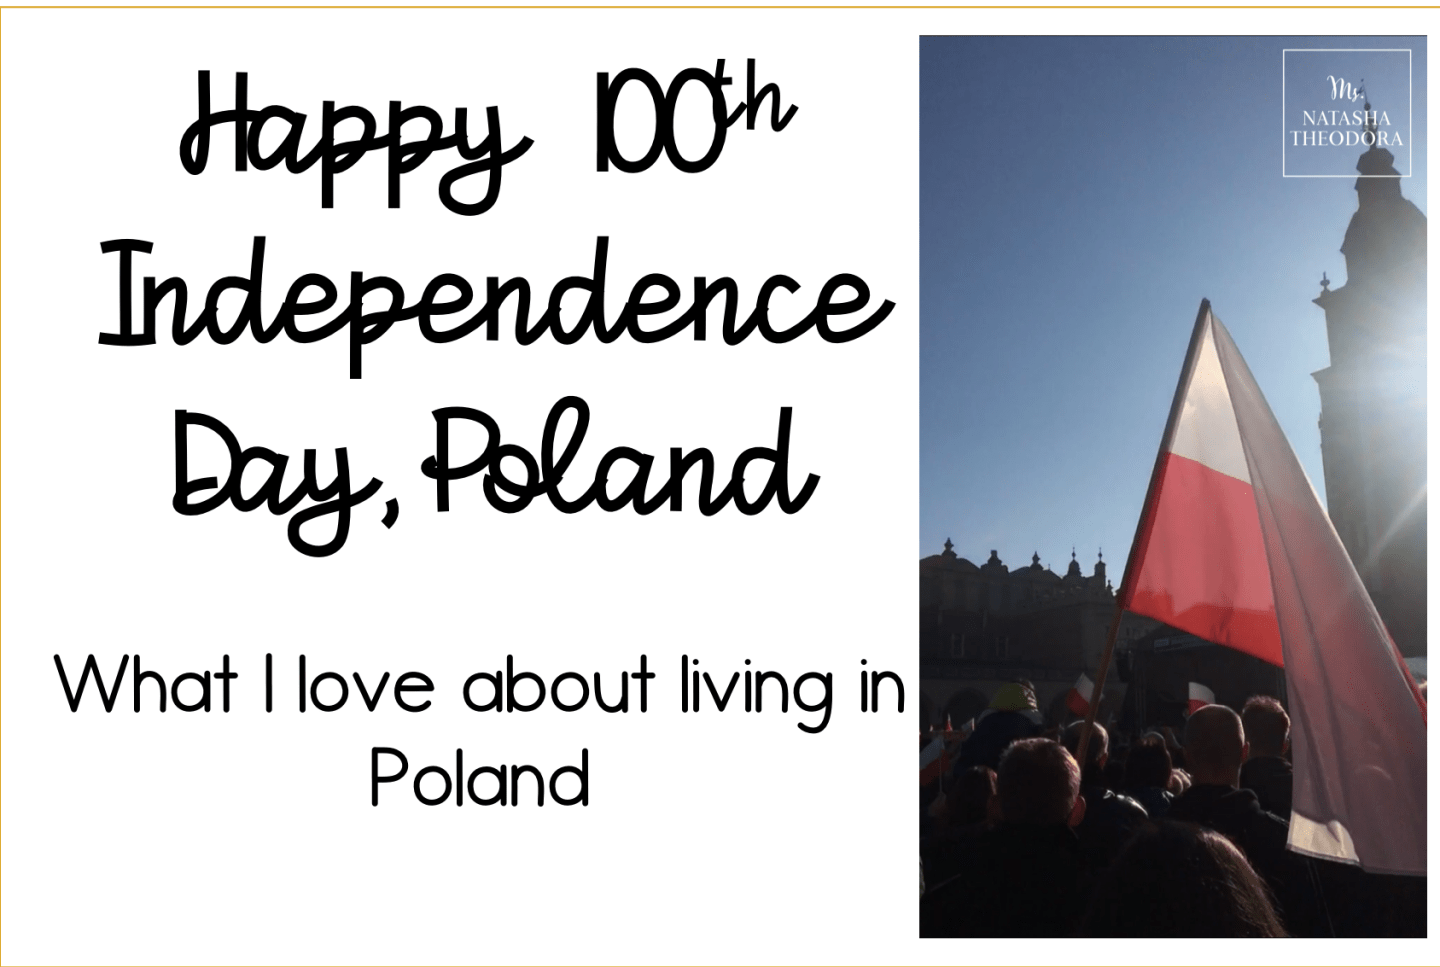 Happy Polish Independence Day!